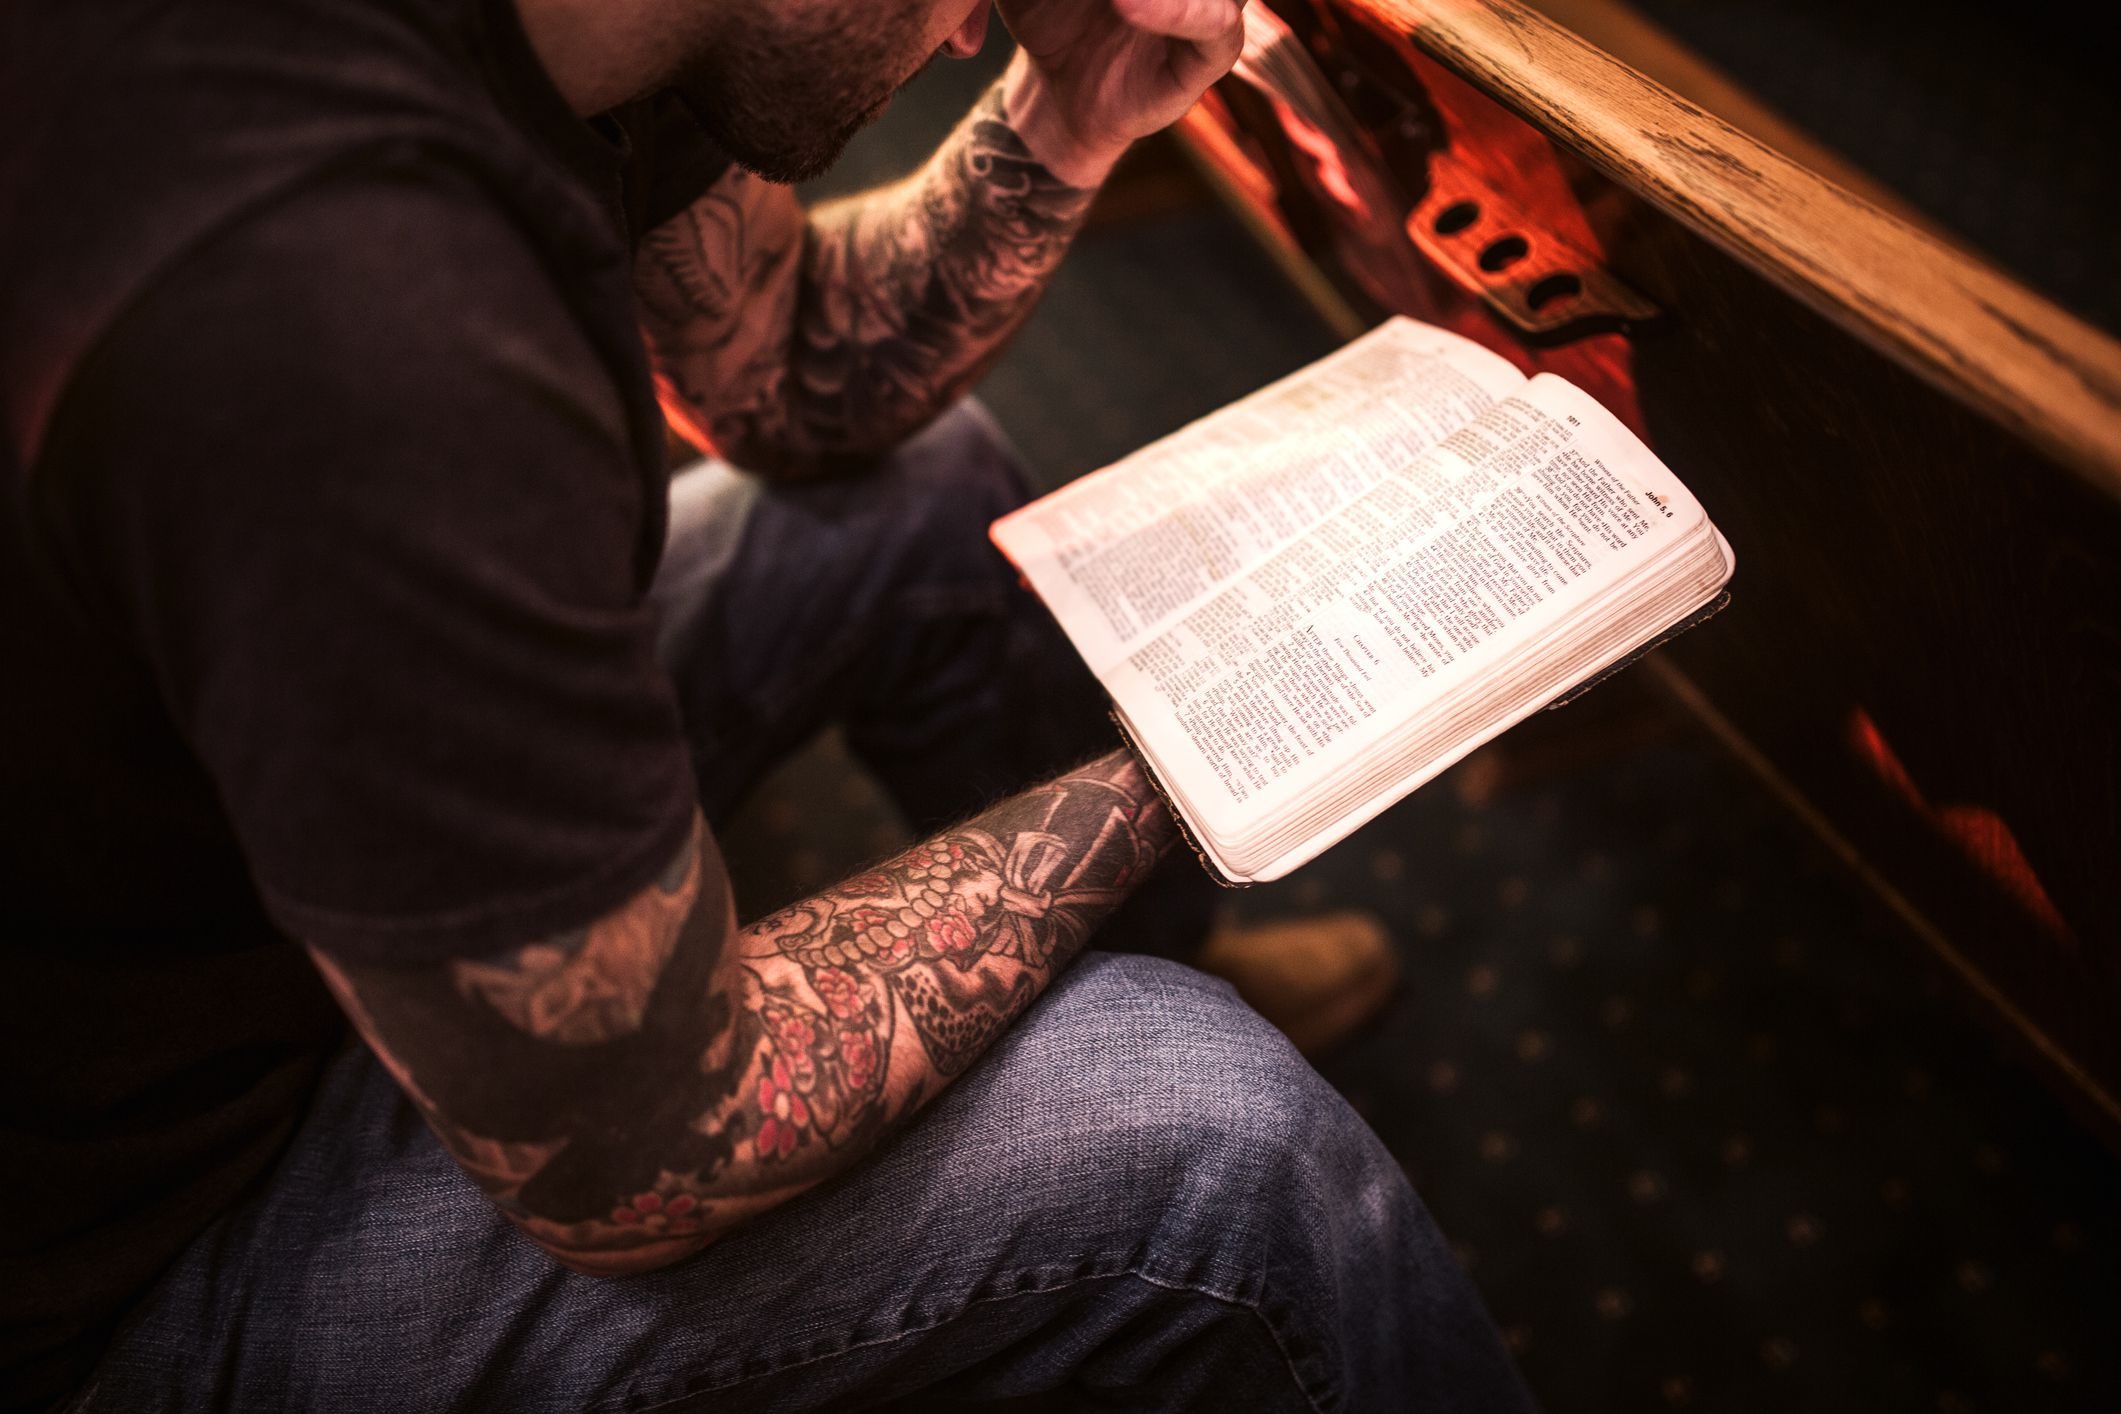 What Does The Bible Say About Tattoos?